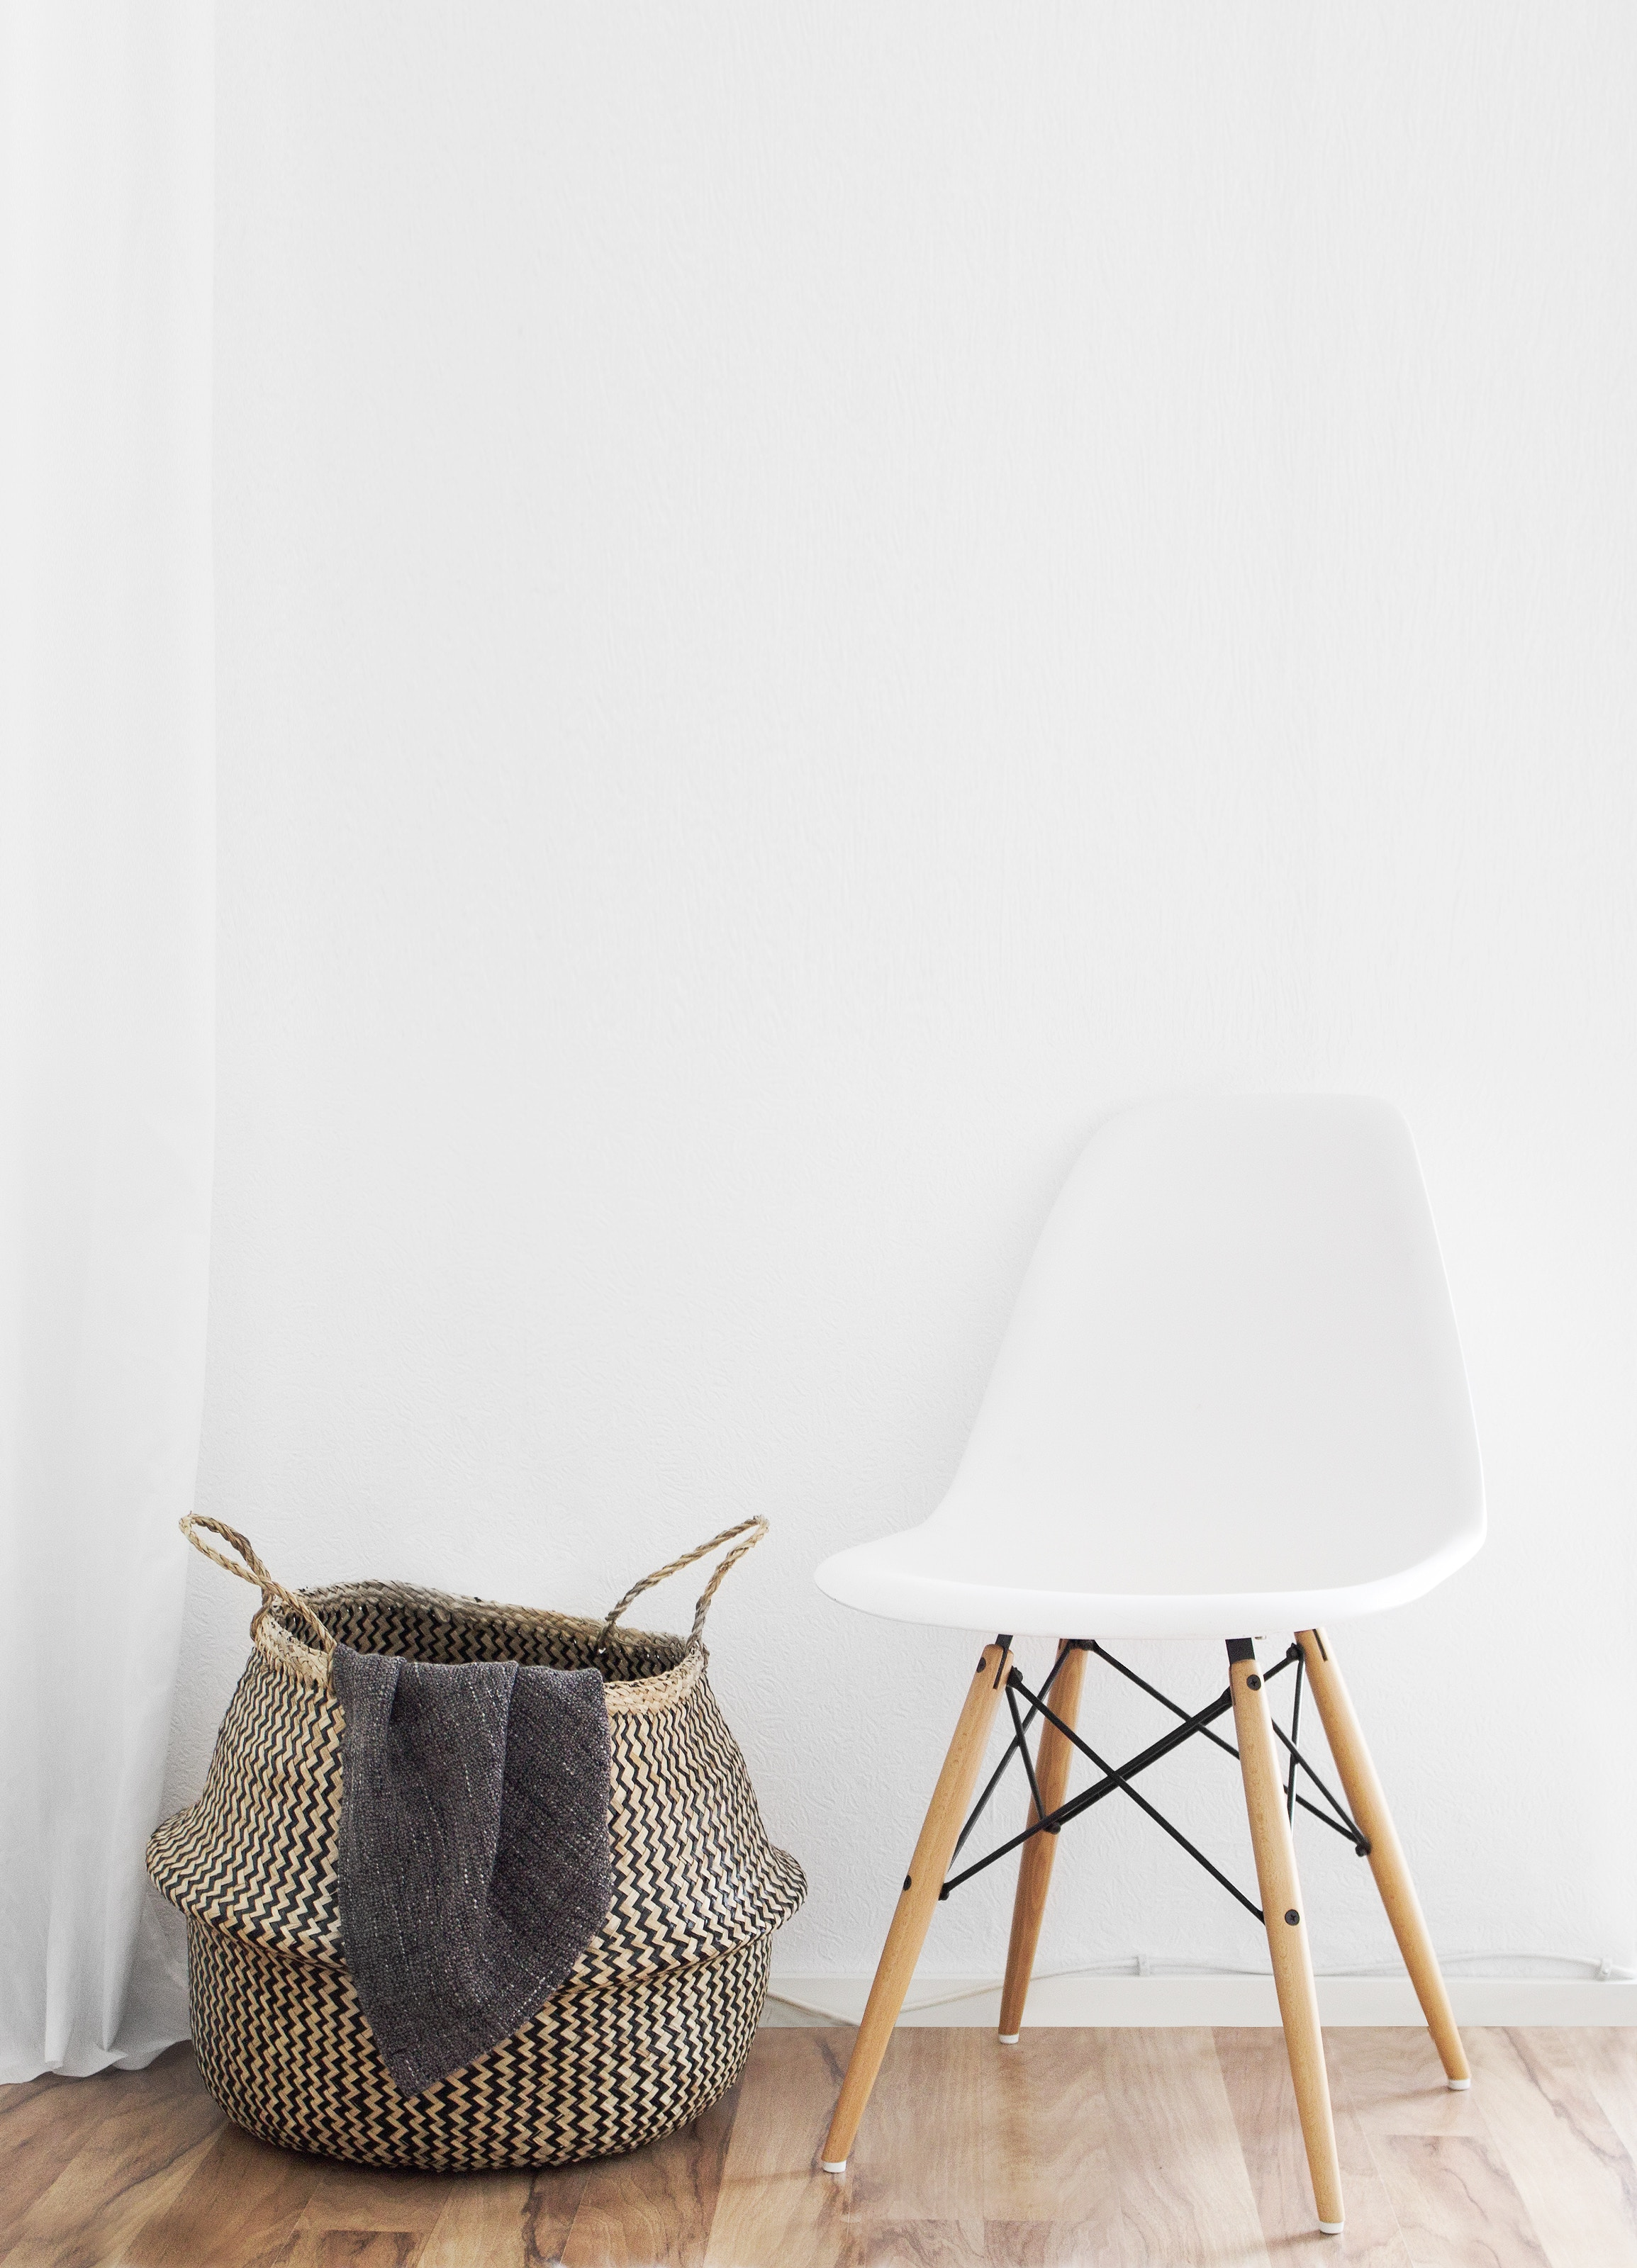 Chair & Basket in Room With White Walls